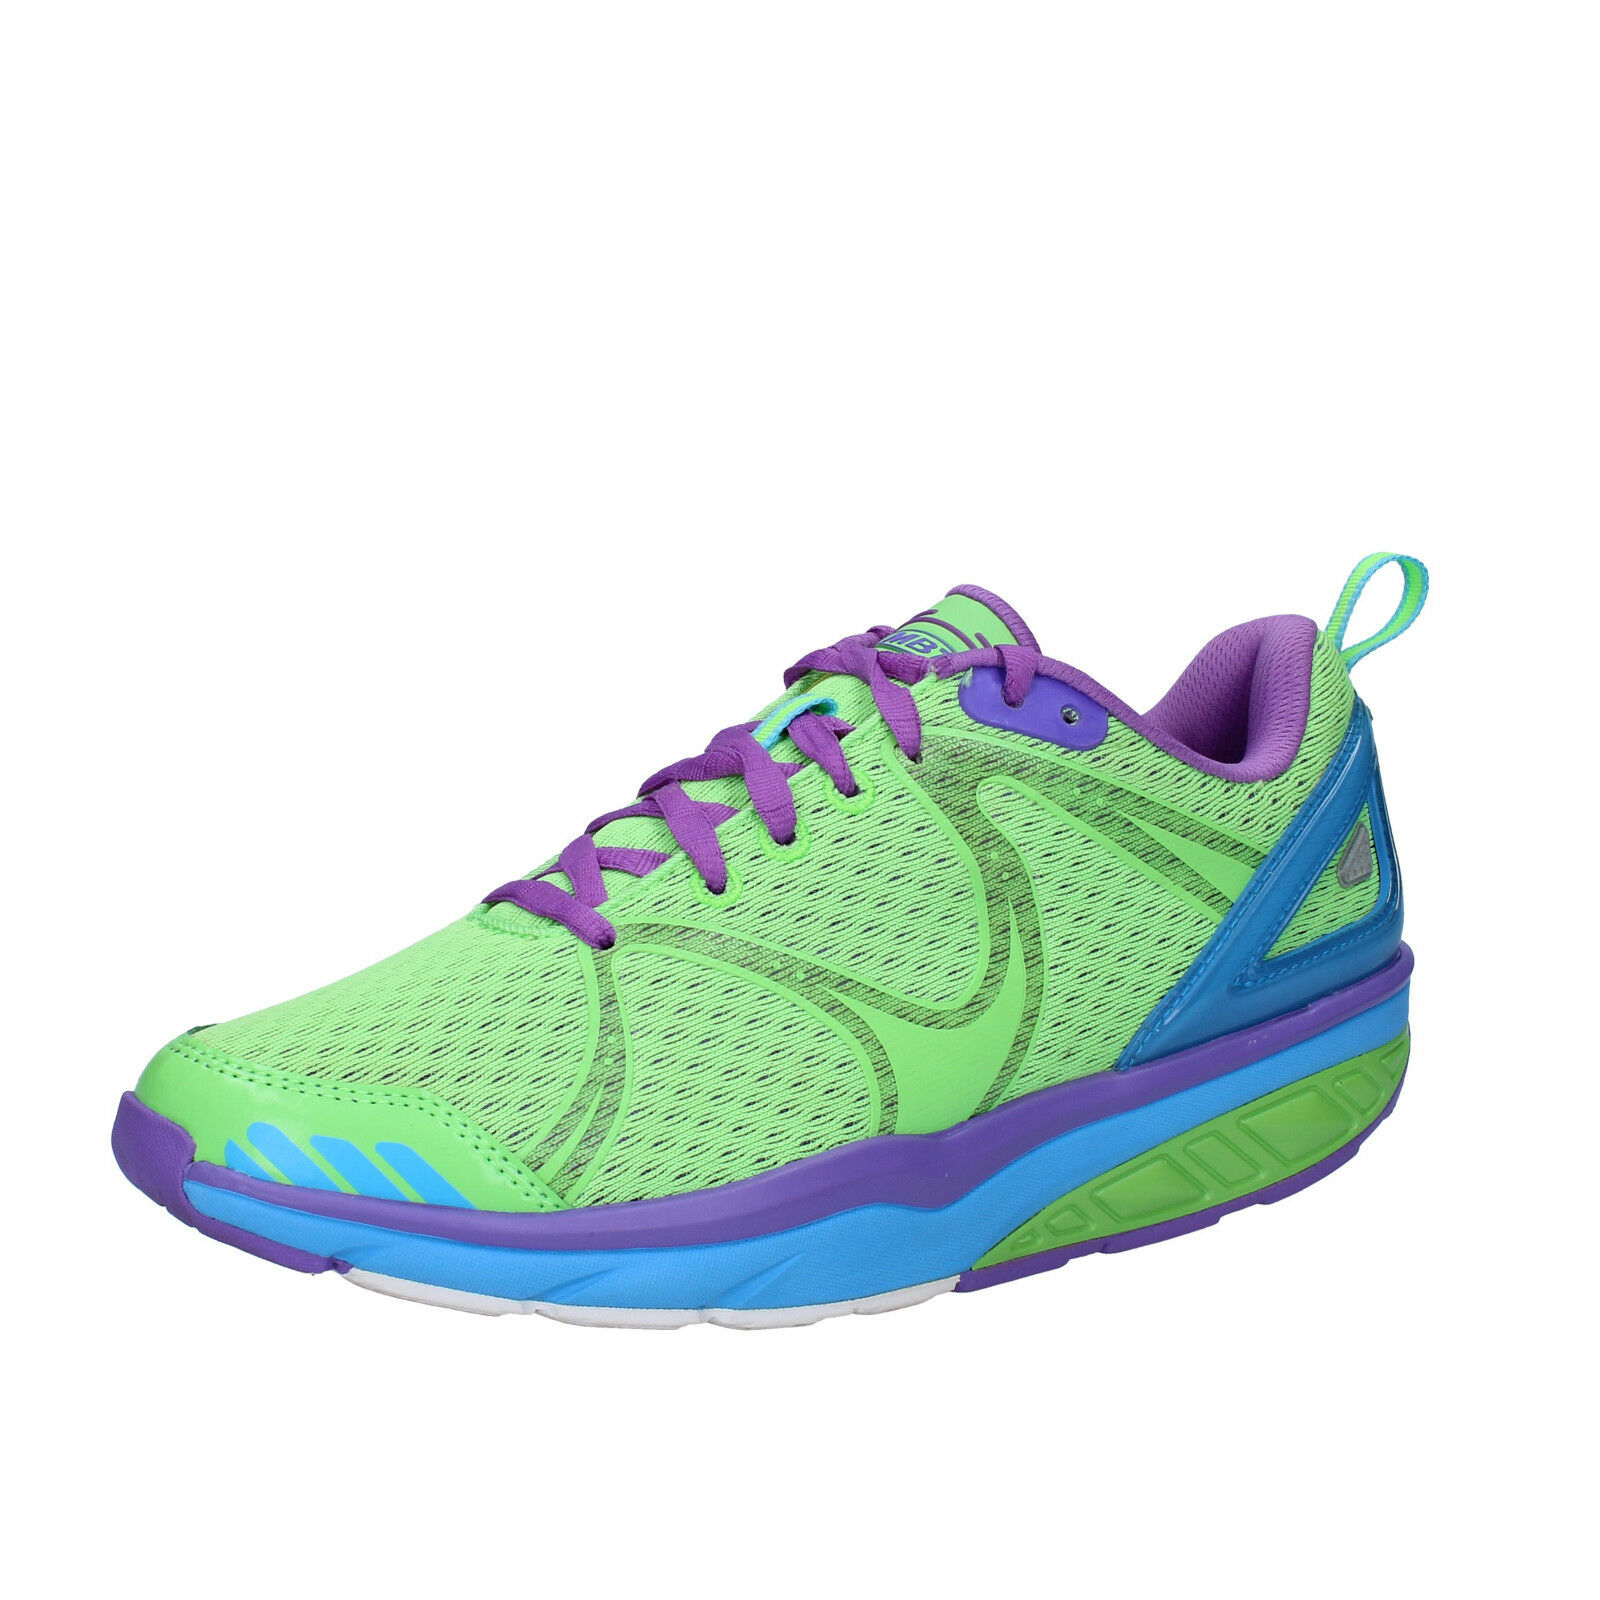 Femme   chaussures  MBT AFIYA 3,5 (EU 36) sneakers Vert textile dynamic AC494-36